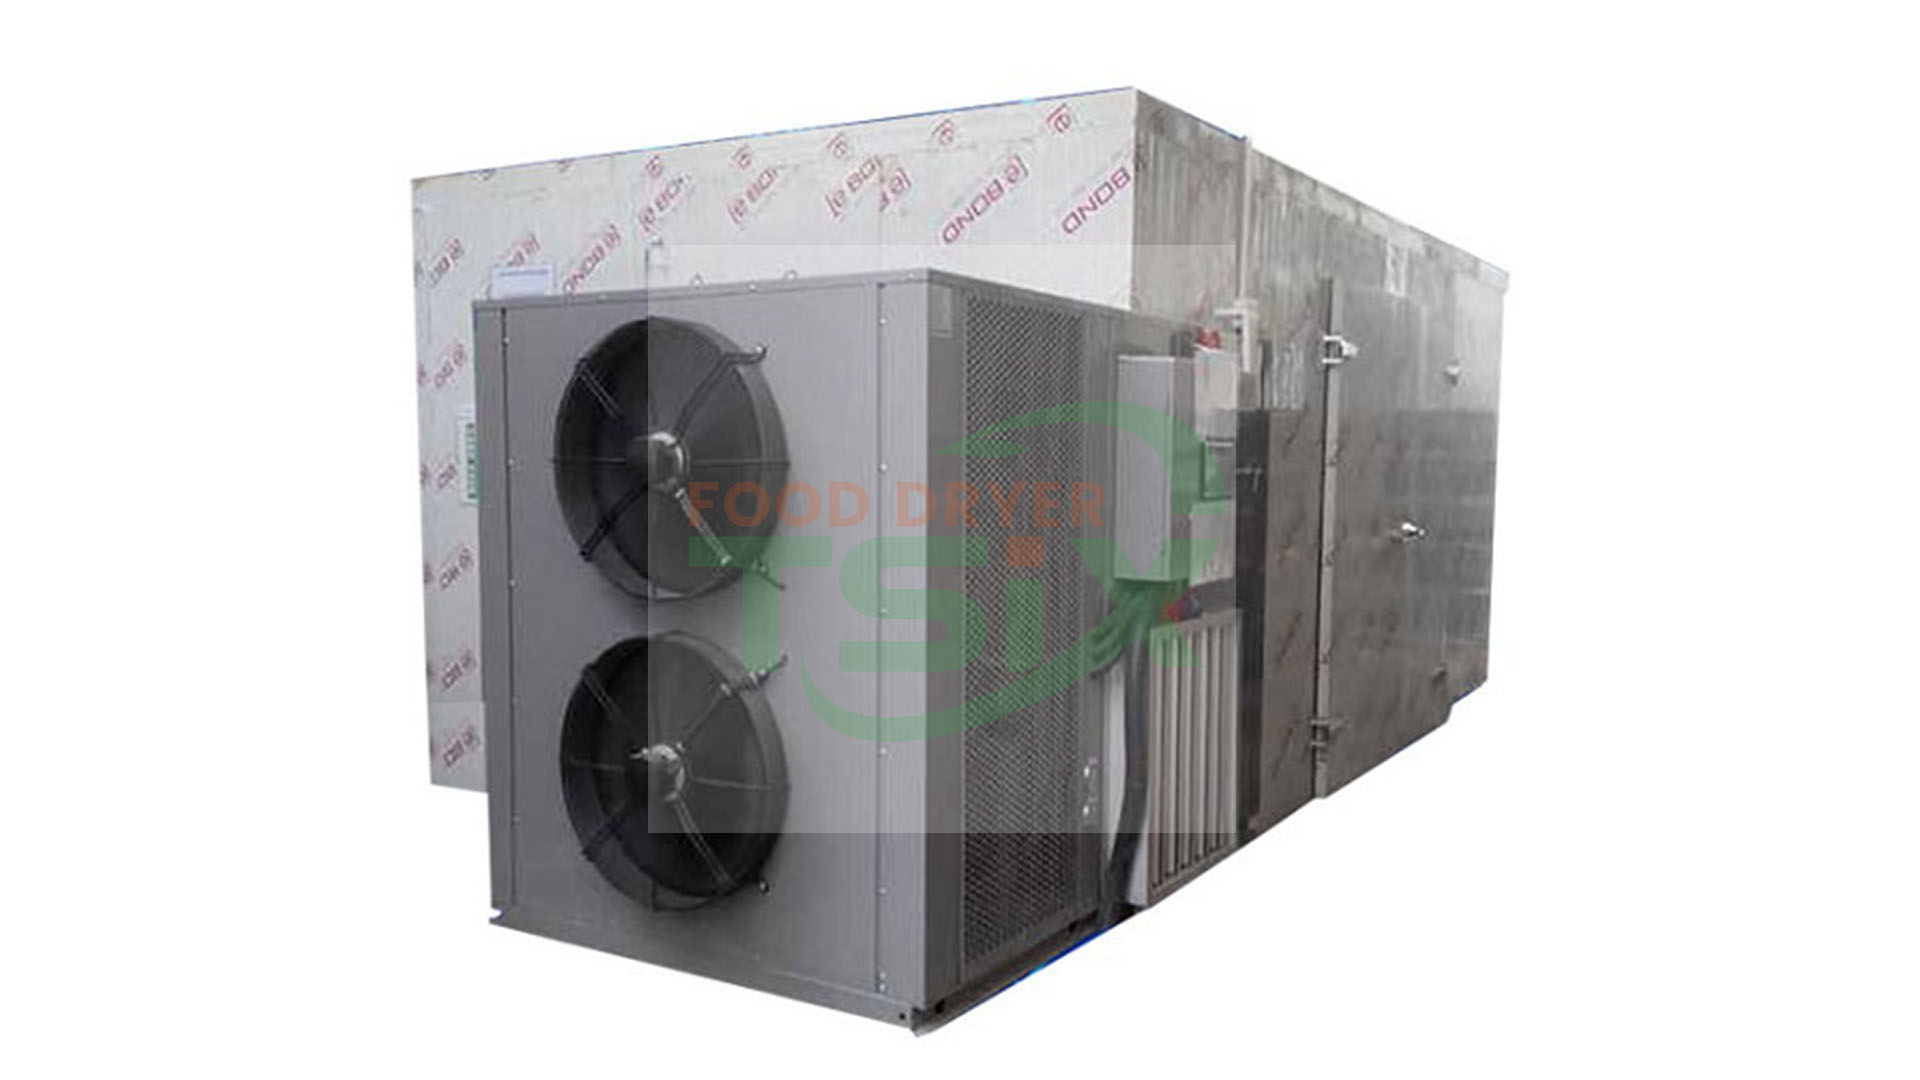 BestQuality 1500kg Fruit Dryer with Heating Drying Dehumdifying Funtions DPHG150S-G Factory